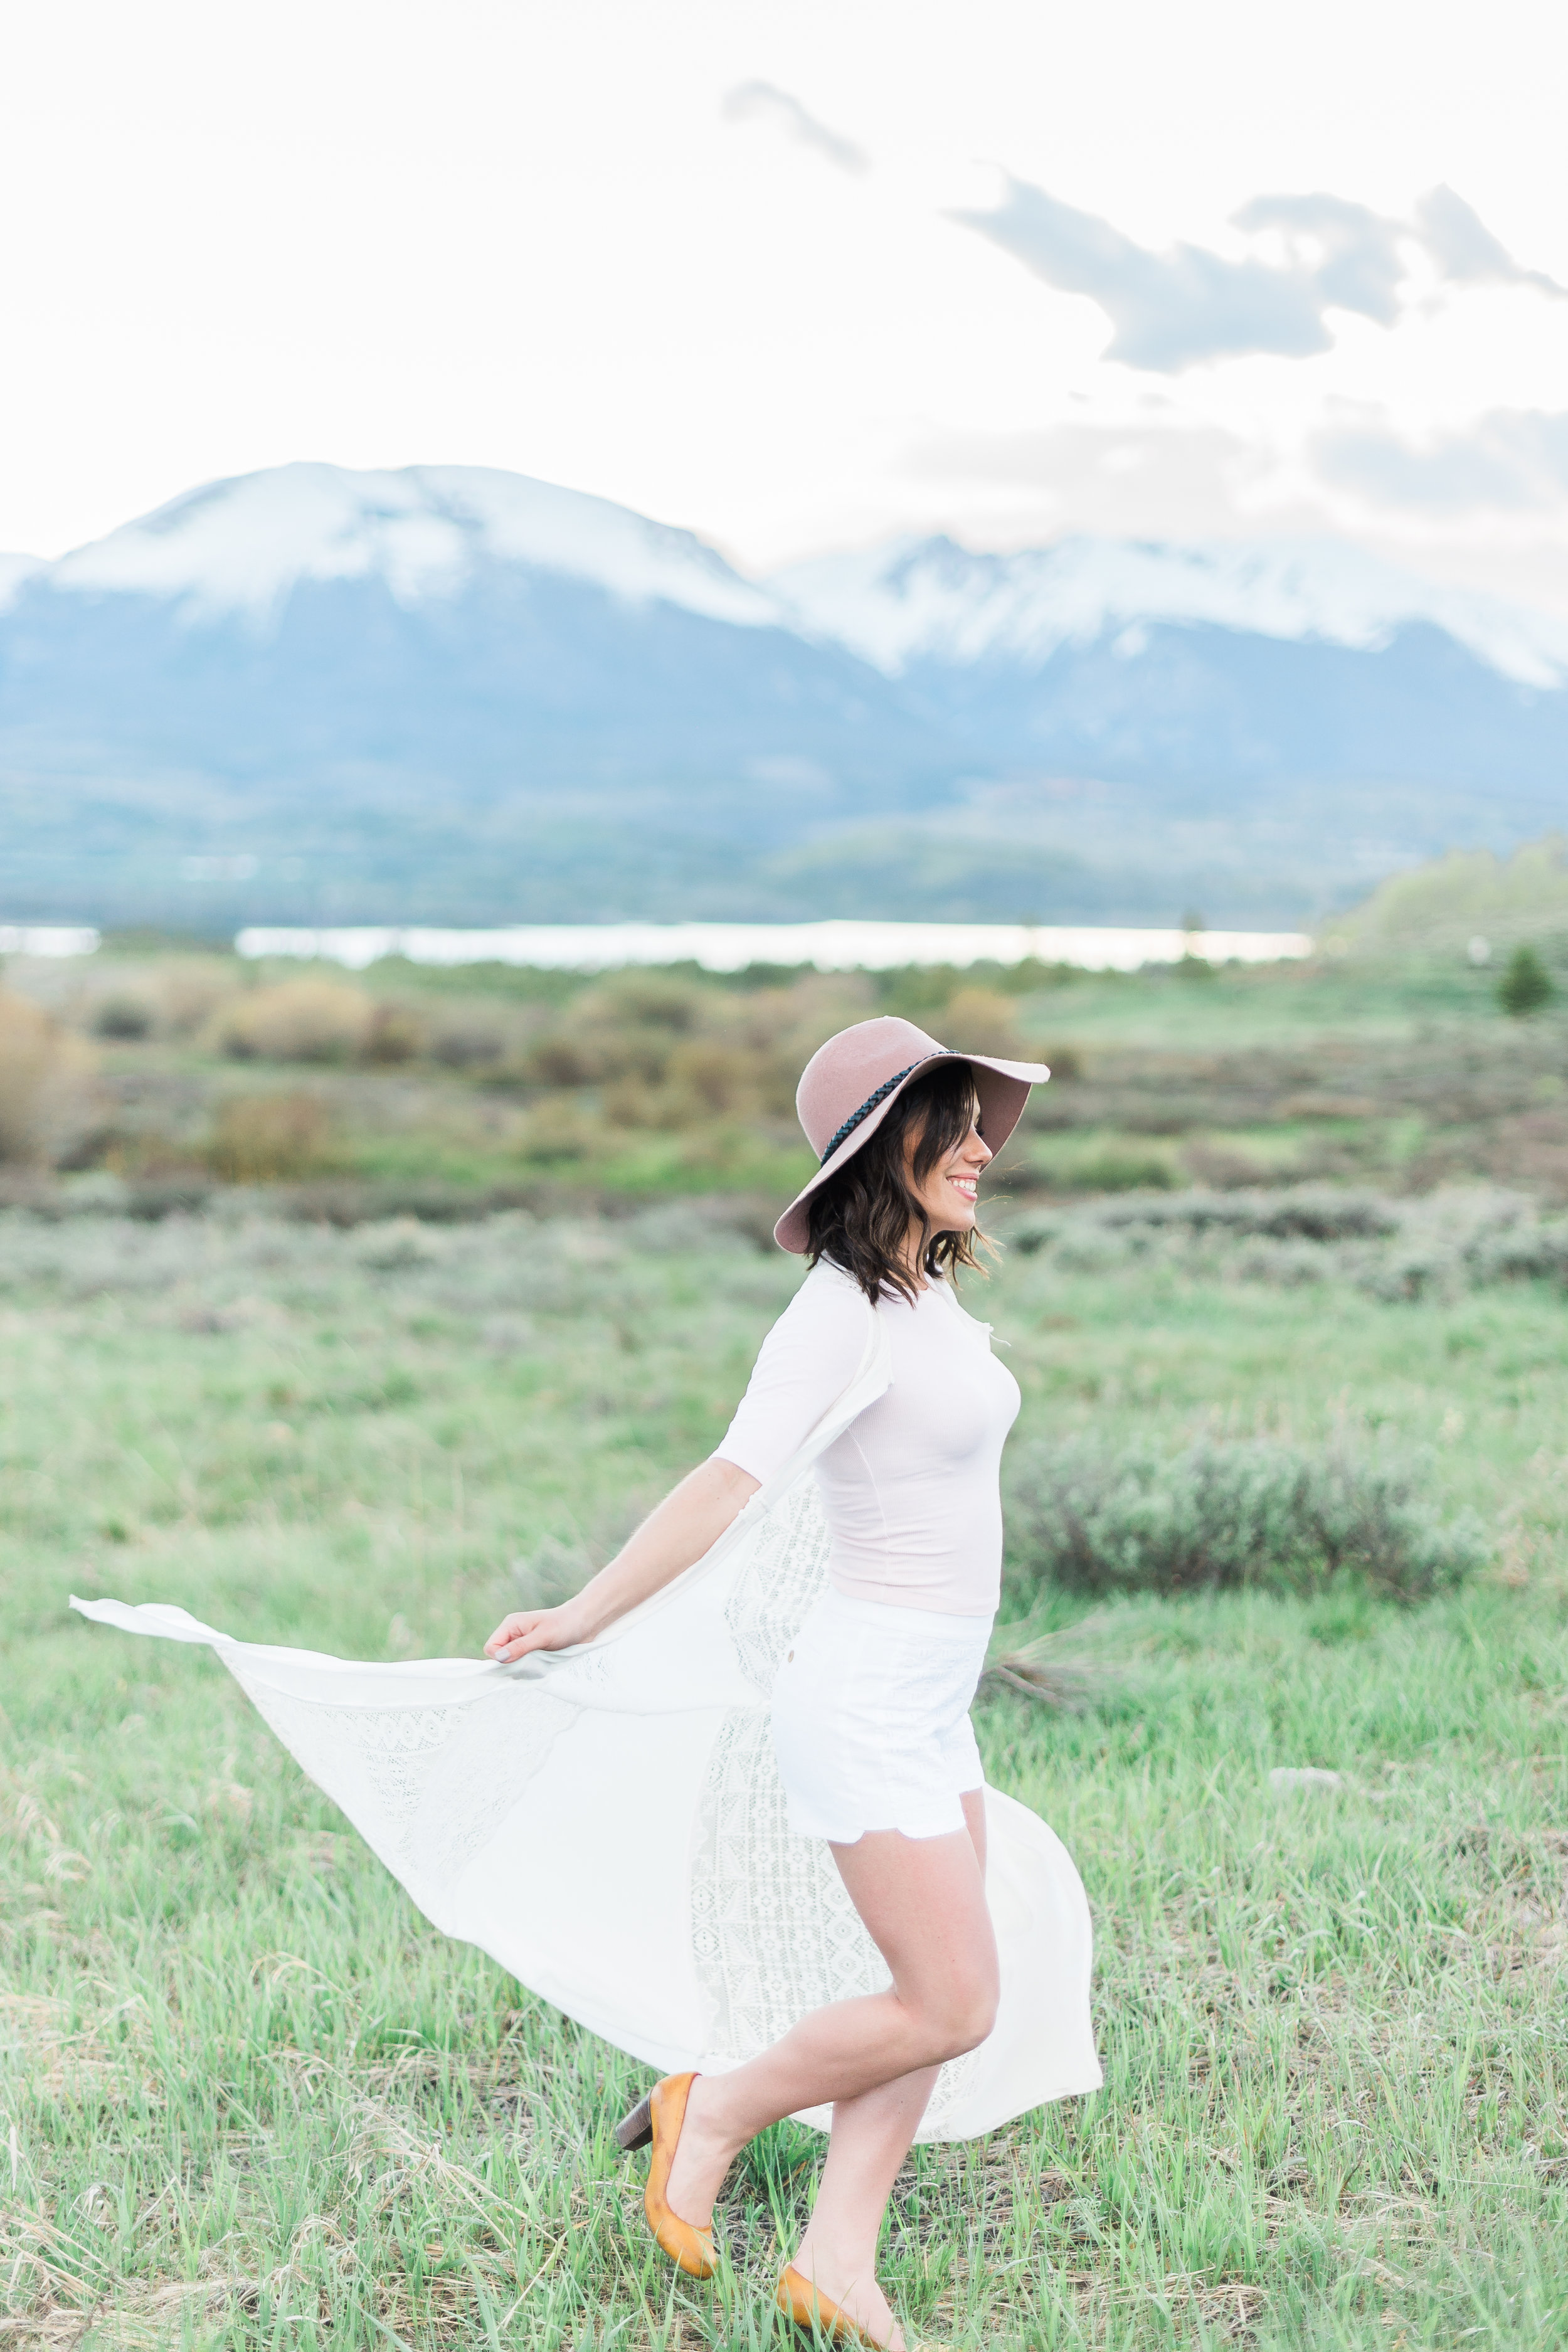 Dani-Cowan-Photography-Lake-Dillon-Photoshoot-LindaBello31.JPG